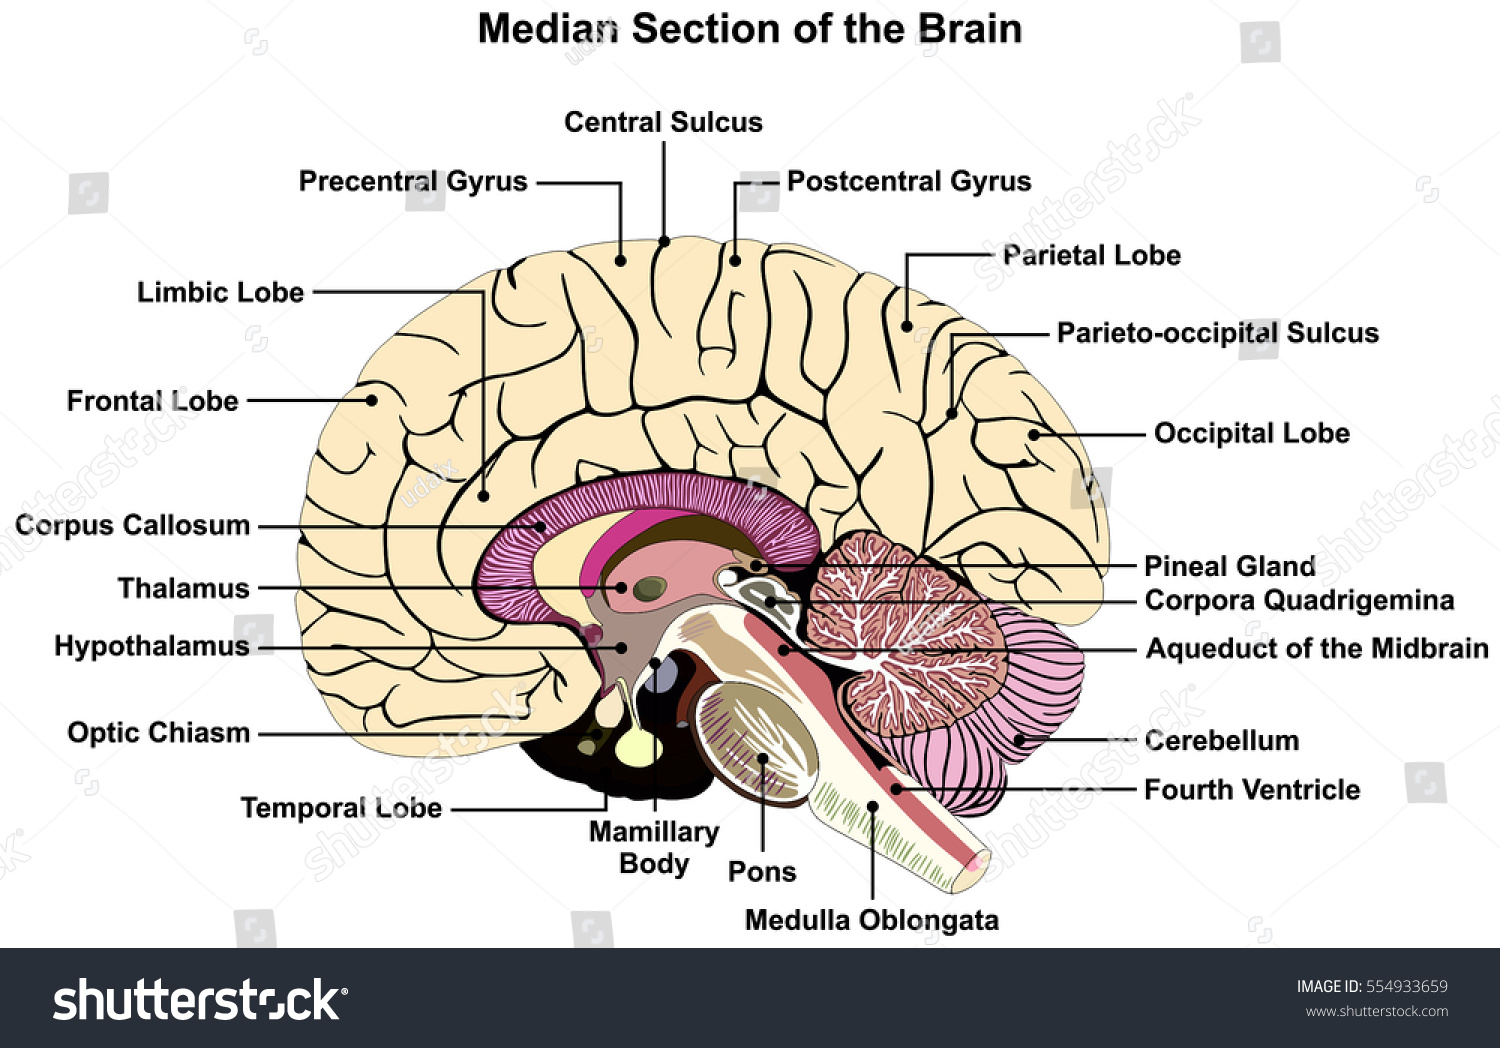 Median Section Human Brain Anatomical Structure Stock Vector ...